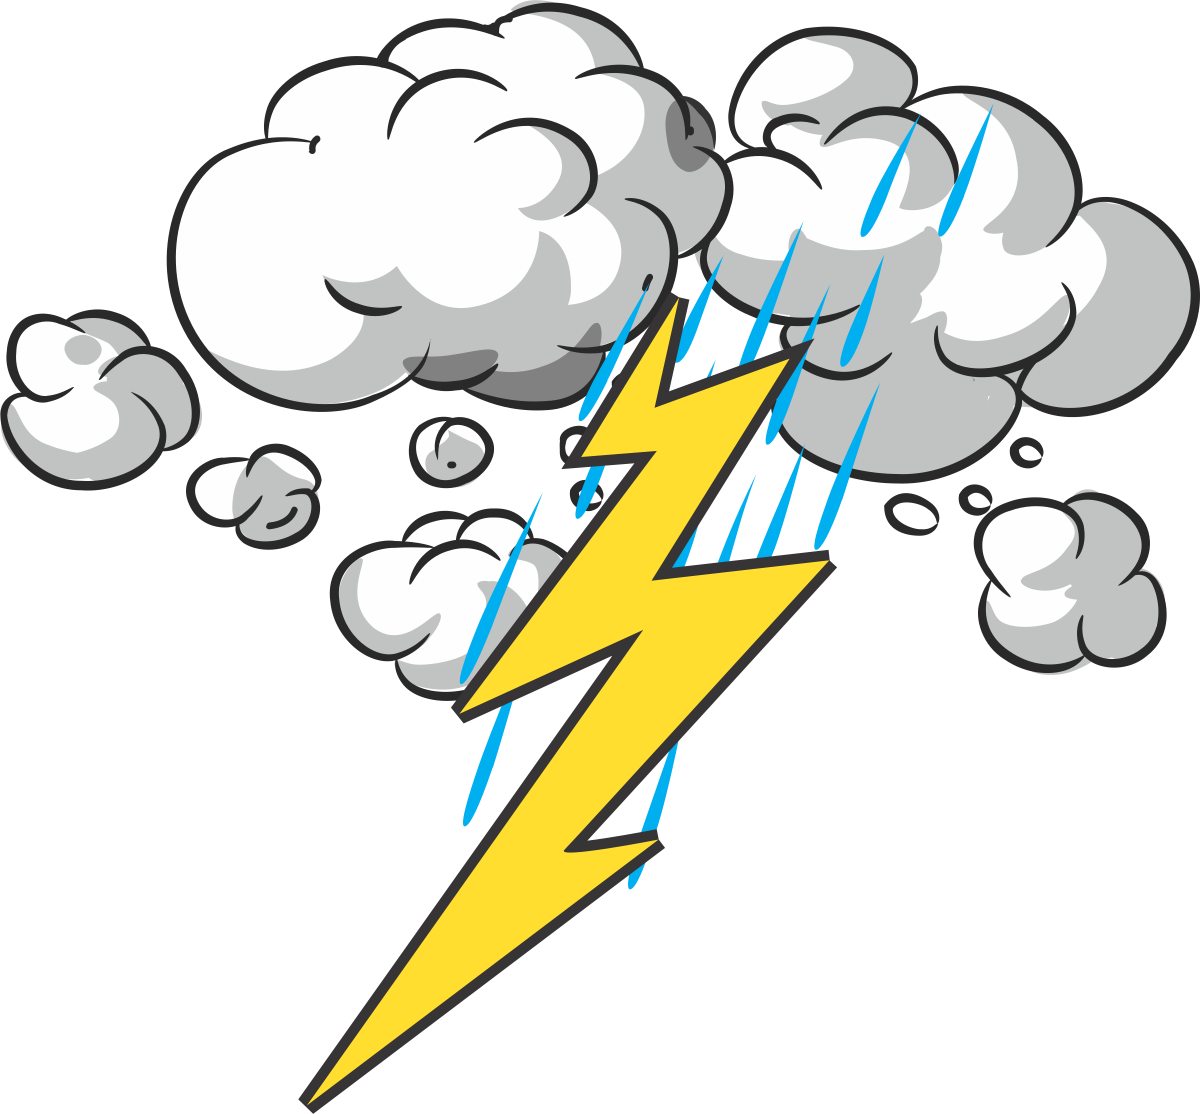 20-208511_collection-of-lightning-and-thunder-high-thunder-and.png